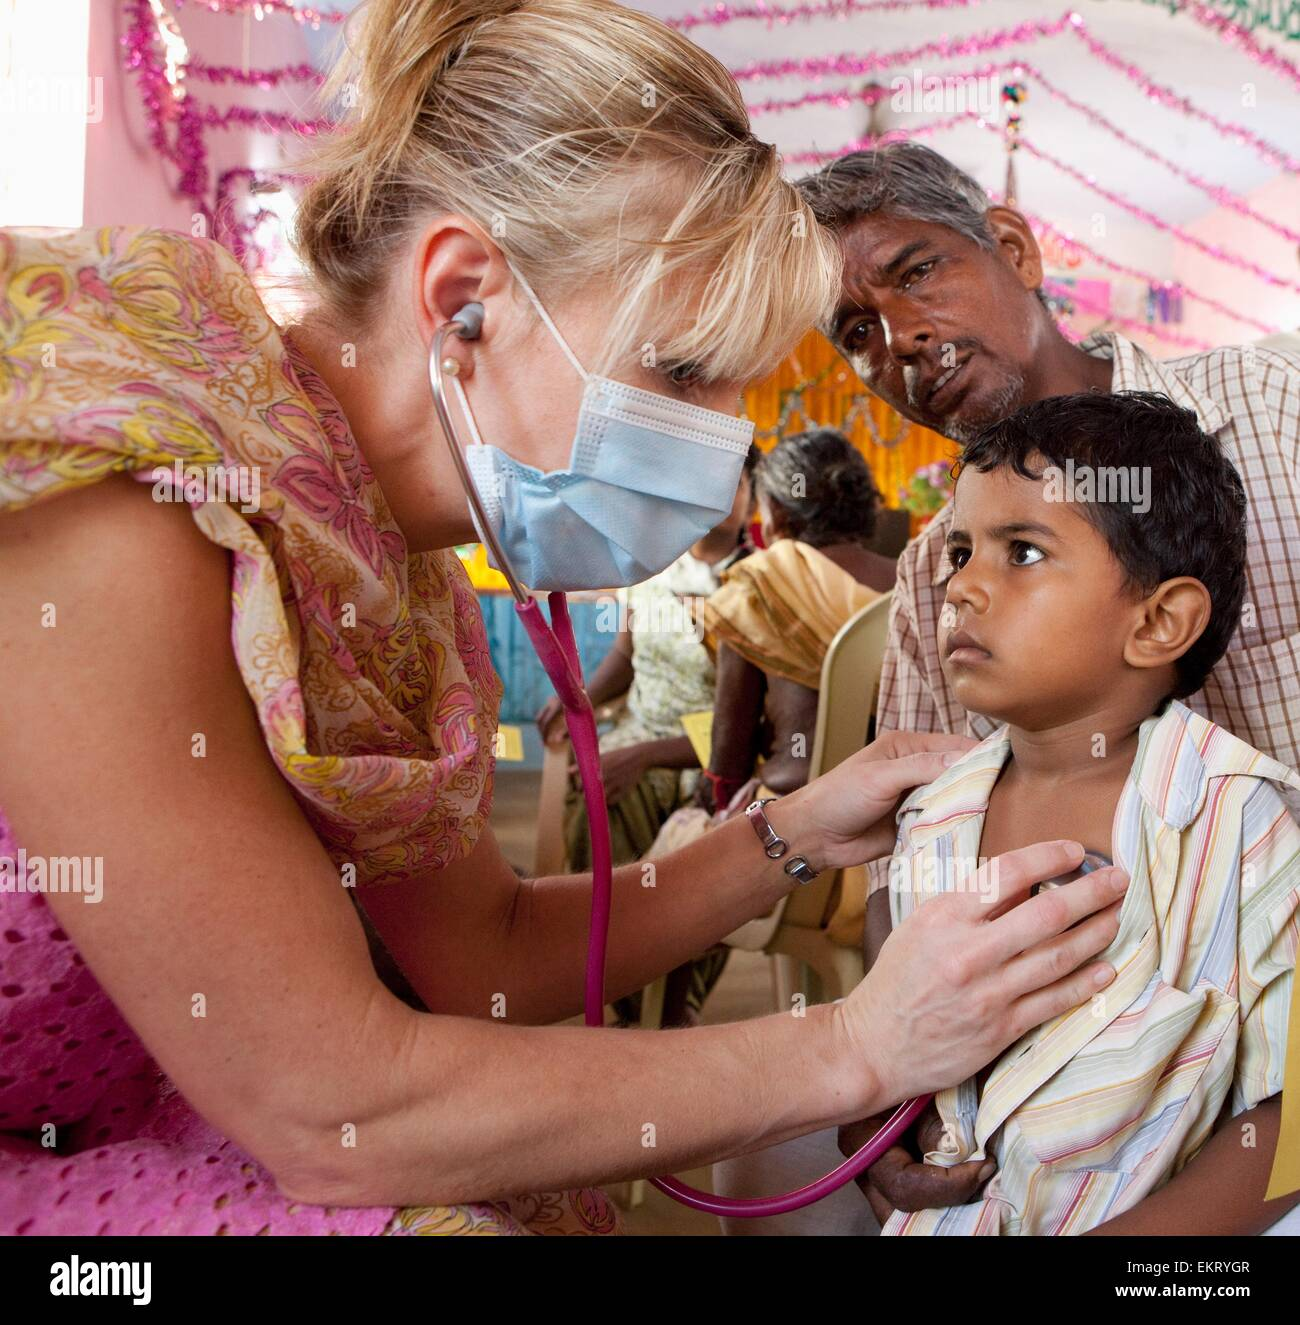 A Woman Wearing A Mask Using A Stethoscope On A Boy With His Father; Sathyamangalam, Tamil Nadu, India - Stock Image